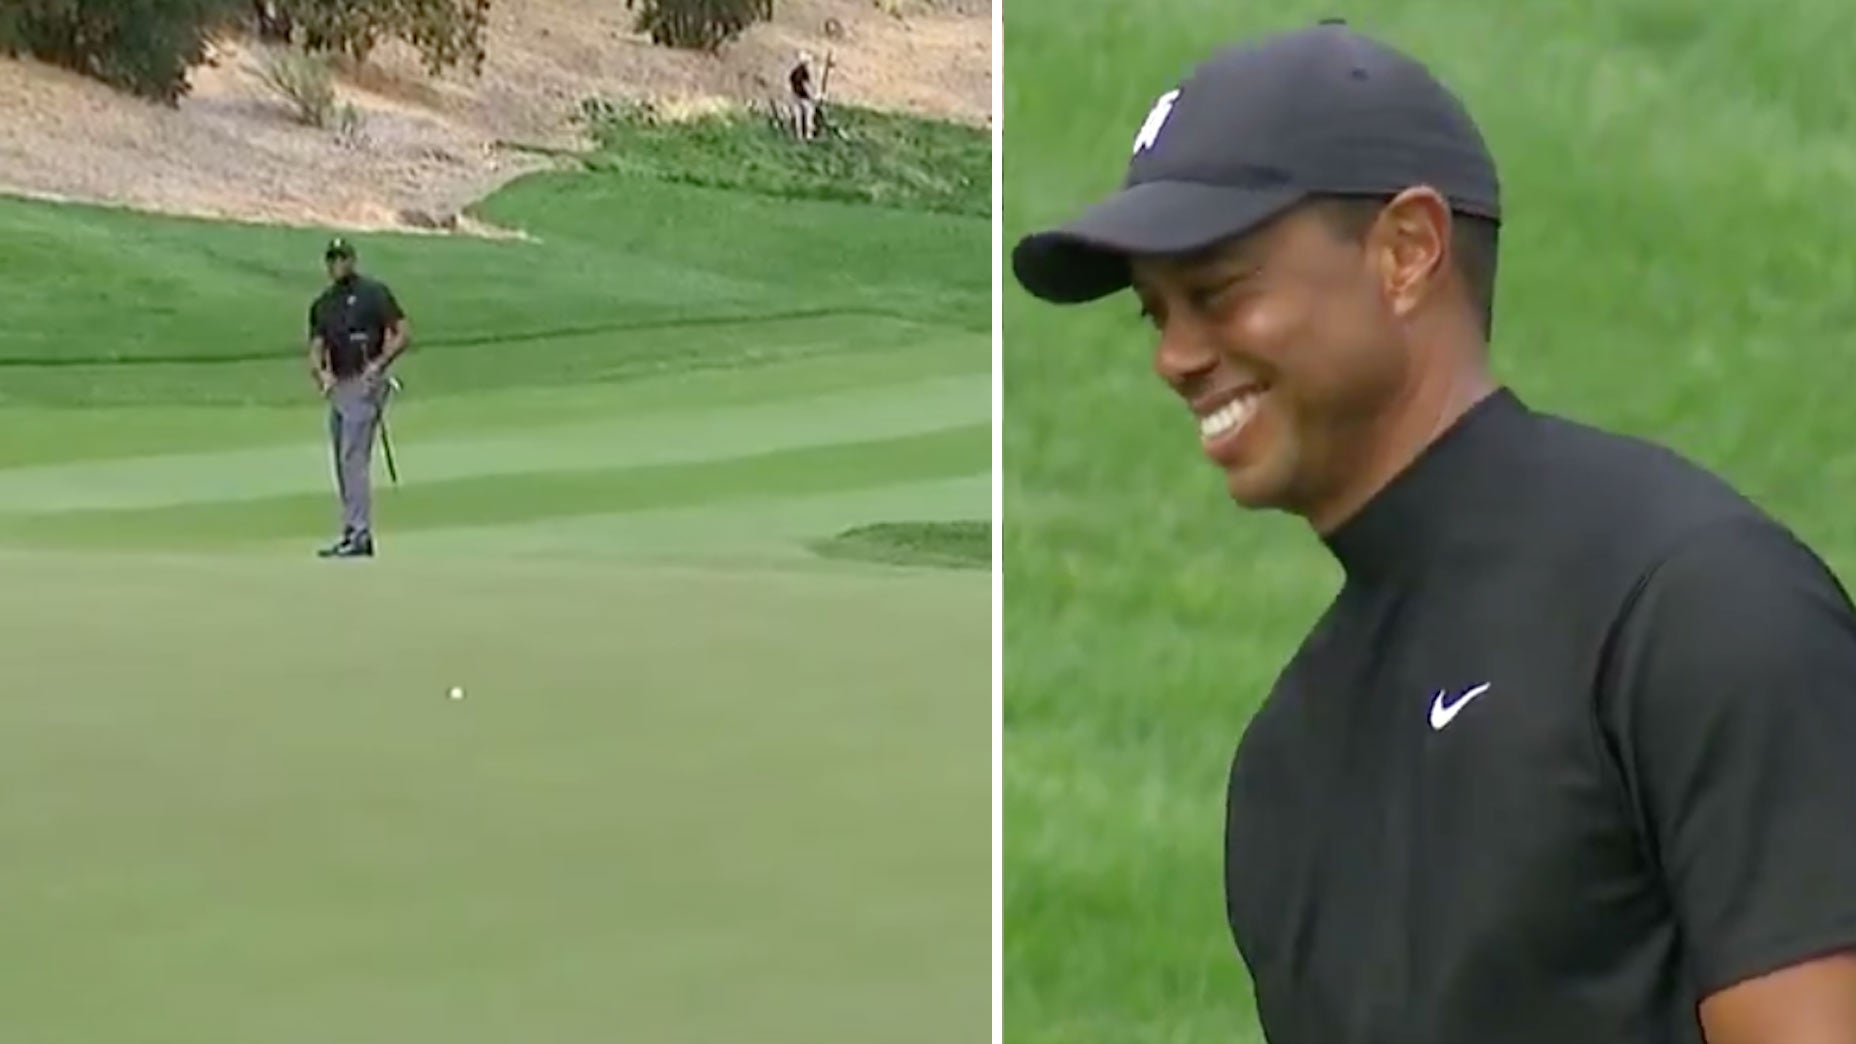 Tiger Woods can only laugh after holing putt from nearly 100 feet